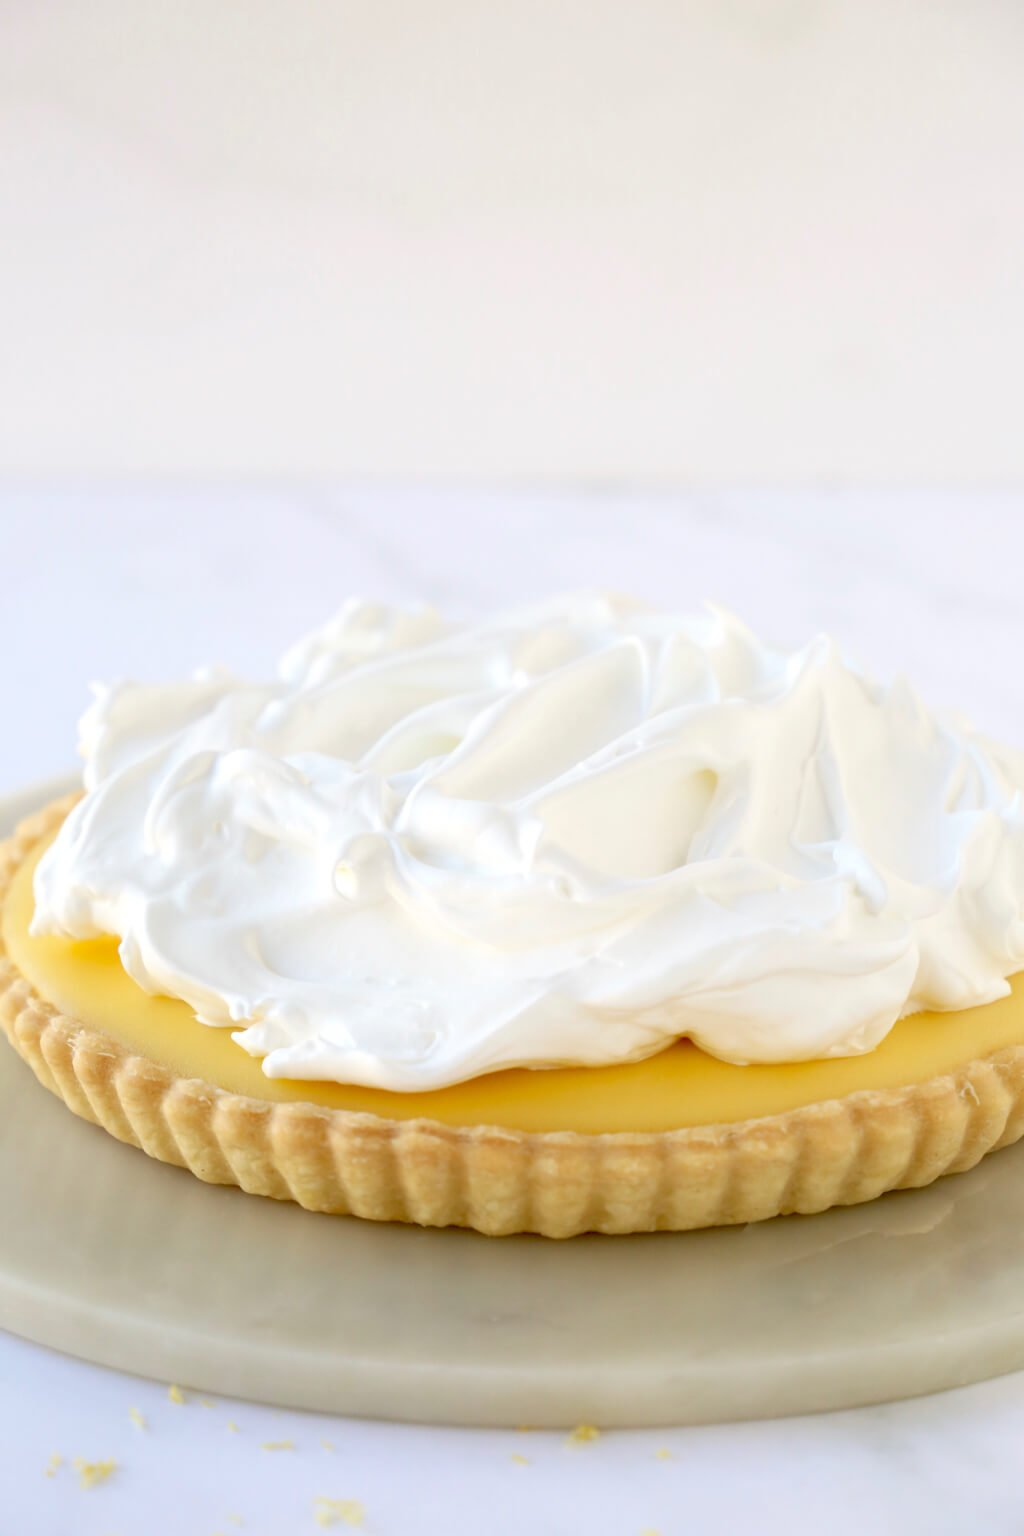 tart shell filling with lemon curd and topped with a pile of meringue